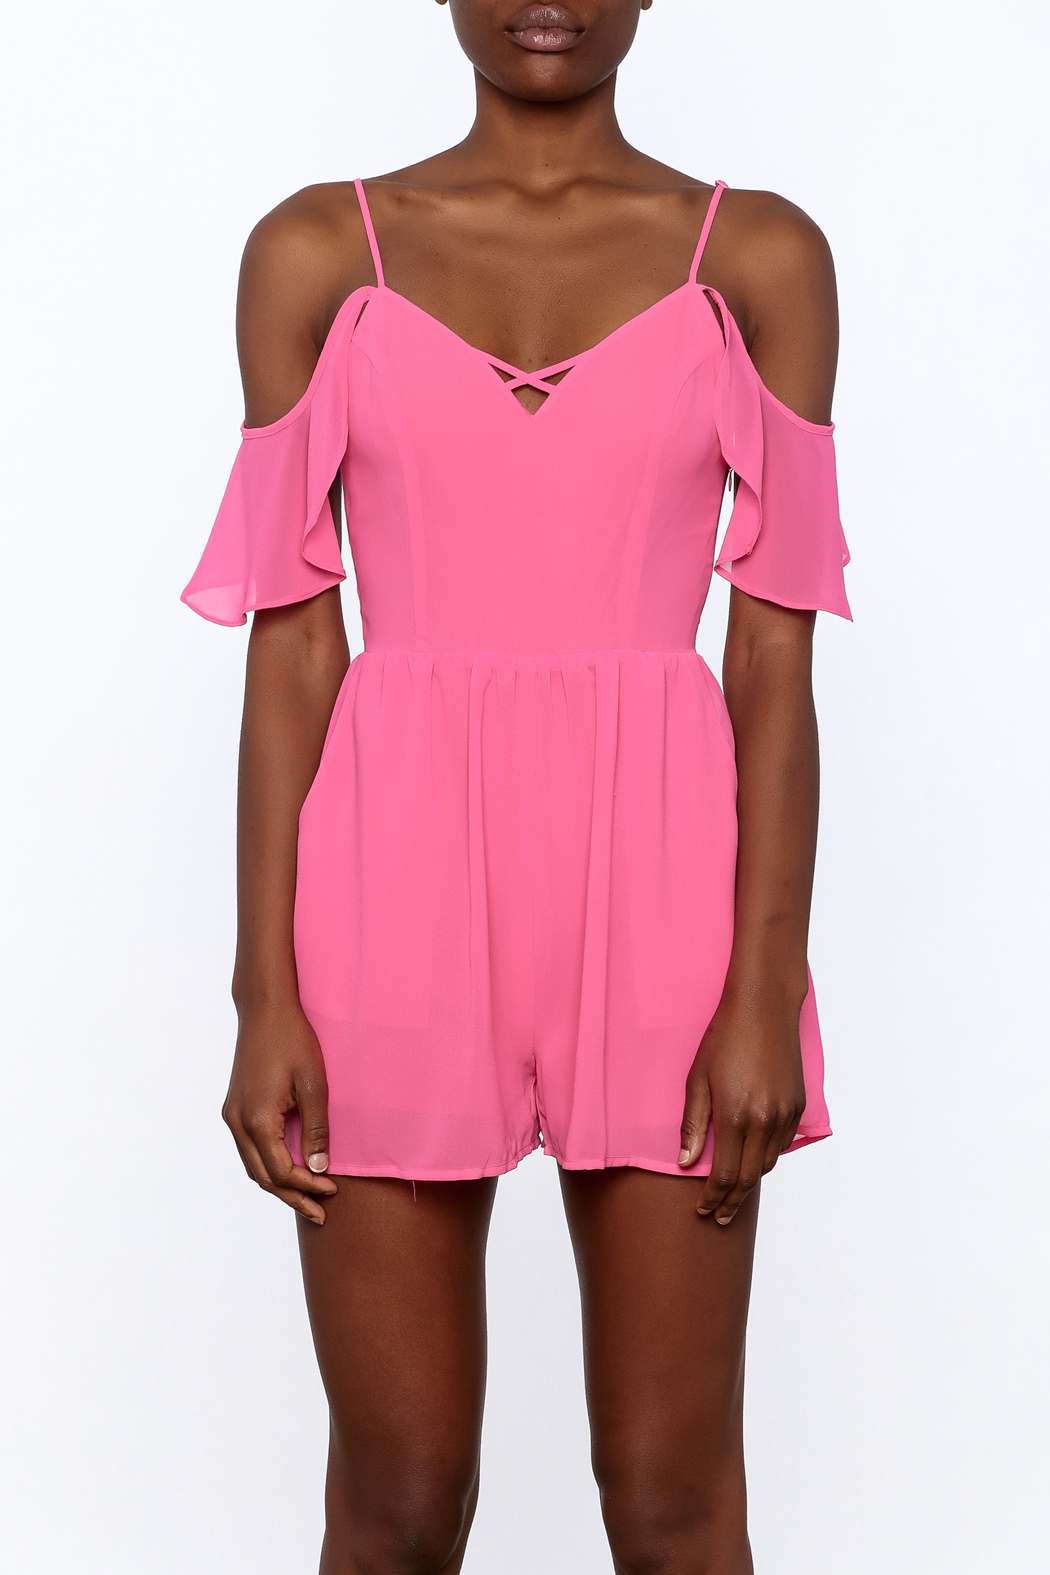 HYFVE Pink Ruffle Romper - Side Cropped Image